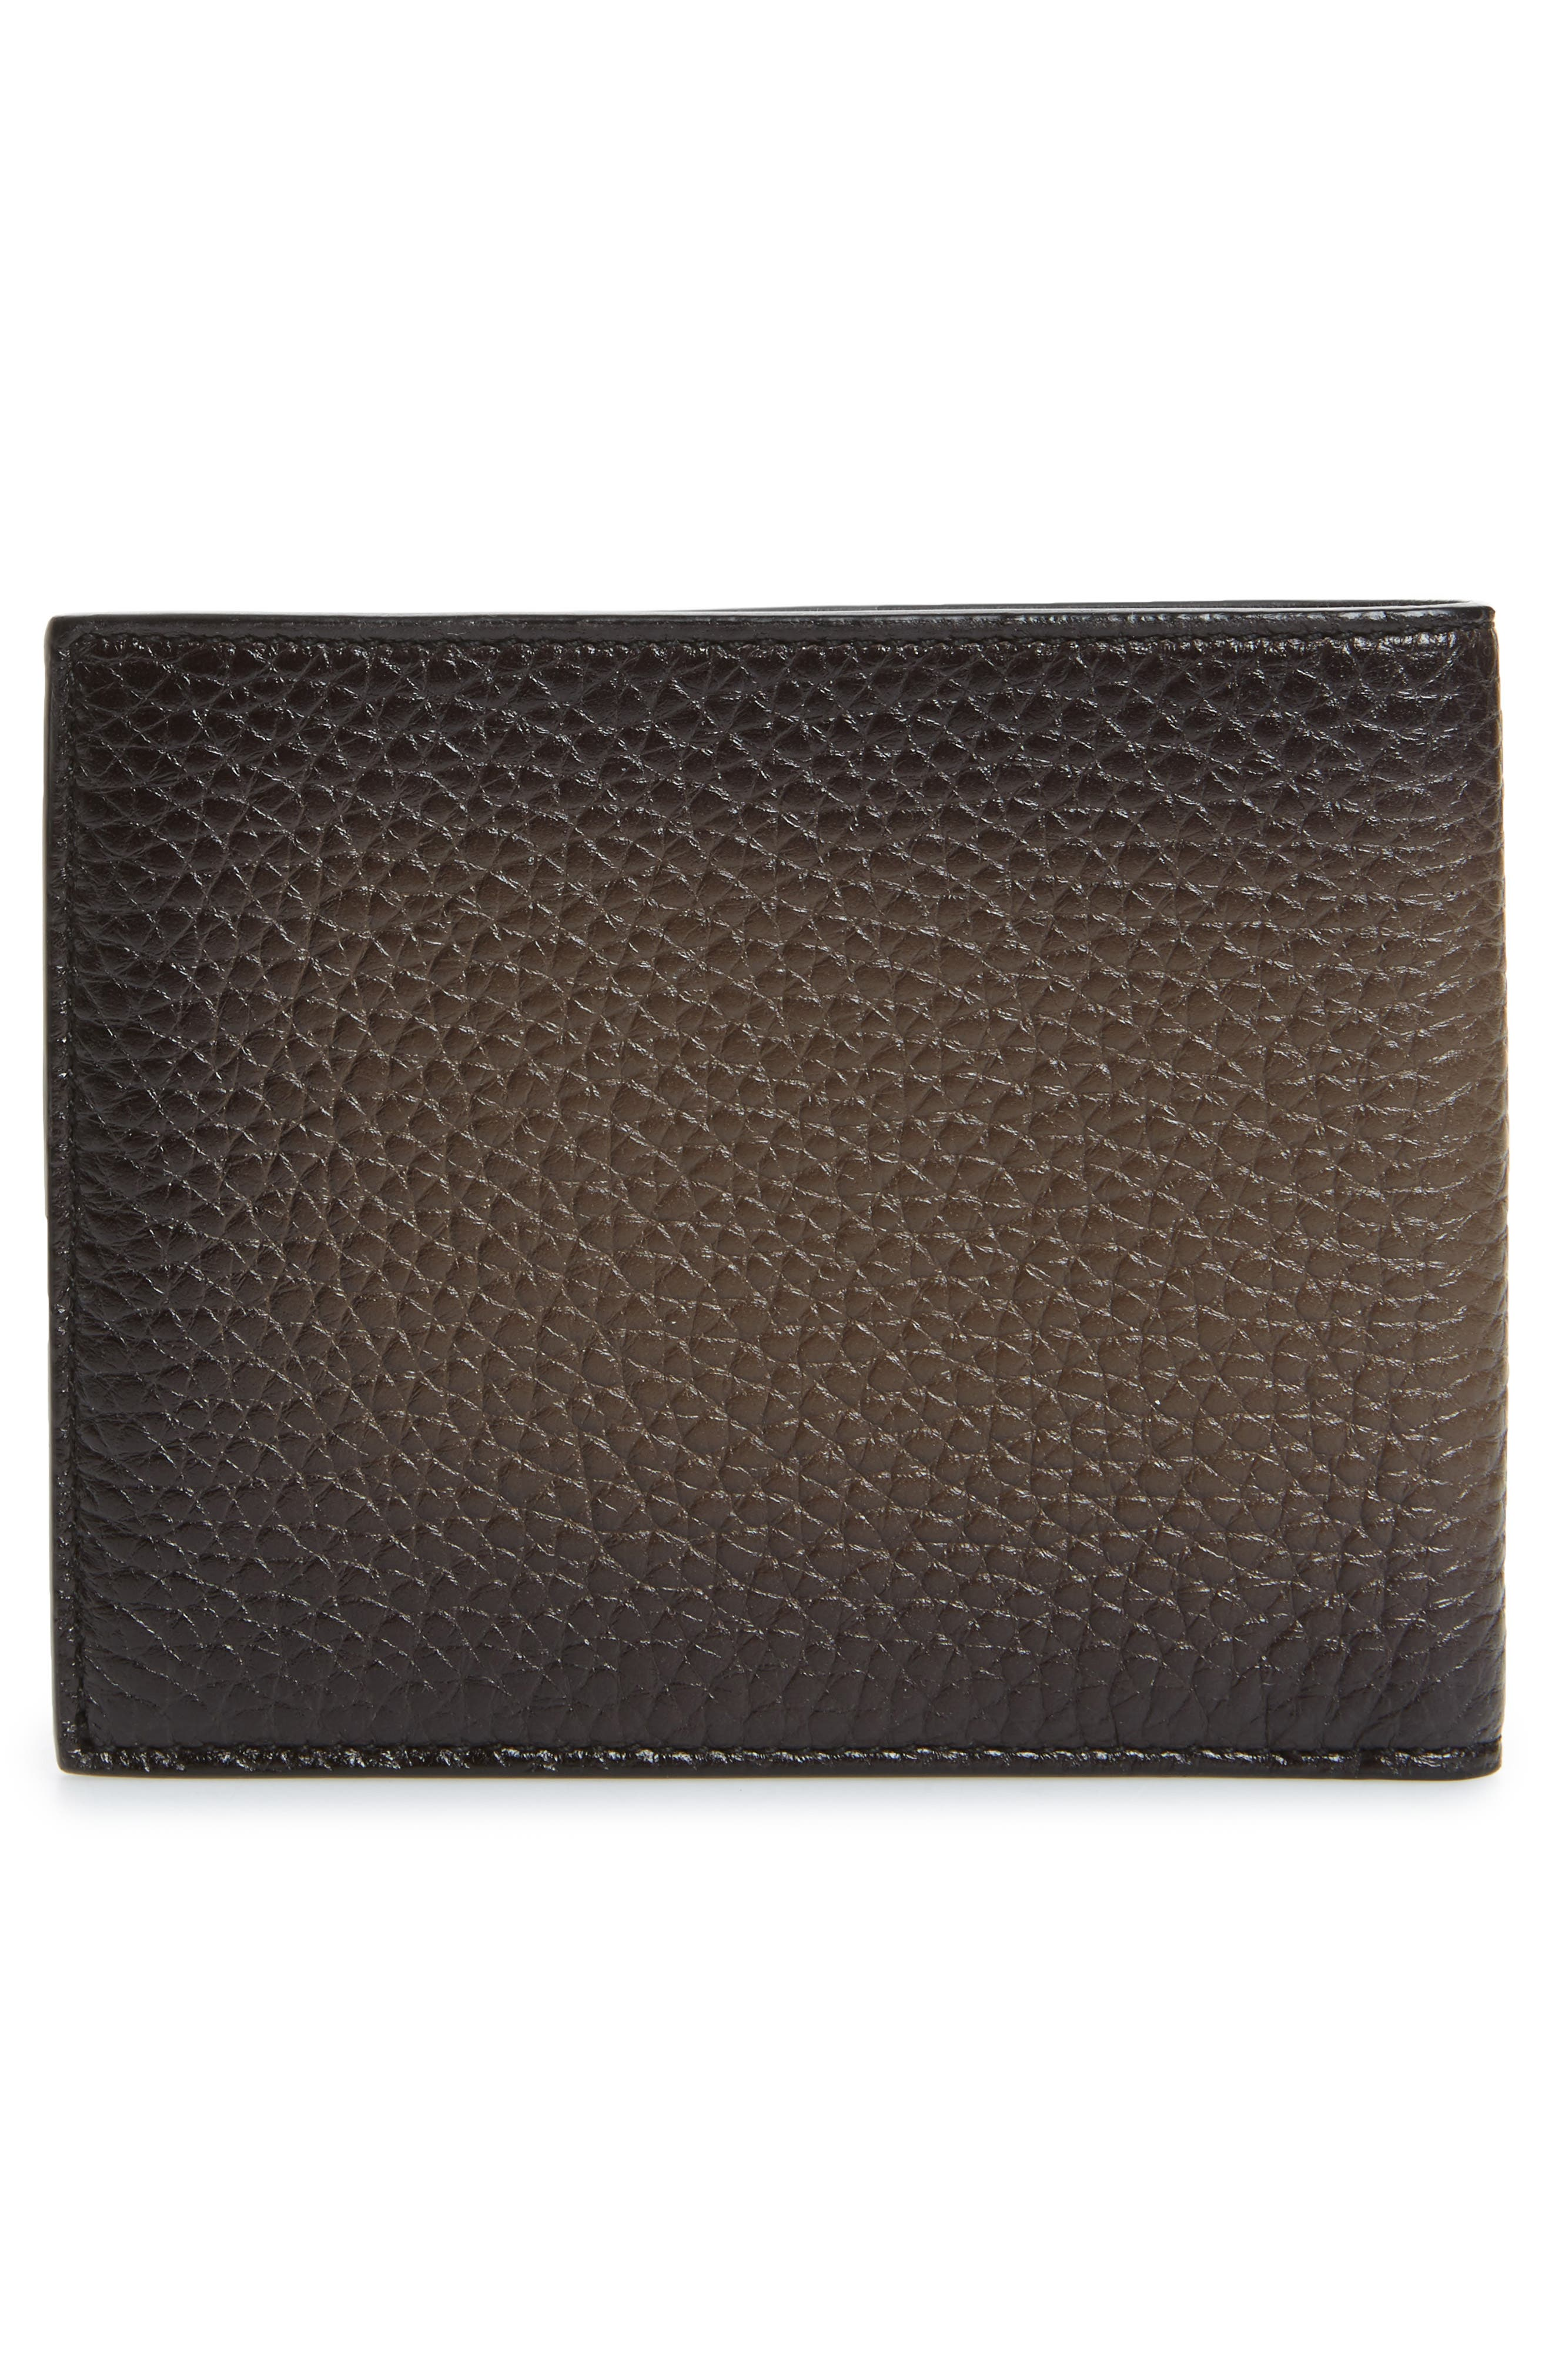 Glow Leather Wallet,                             Alternate thumbnail 3, color,